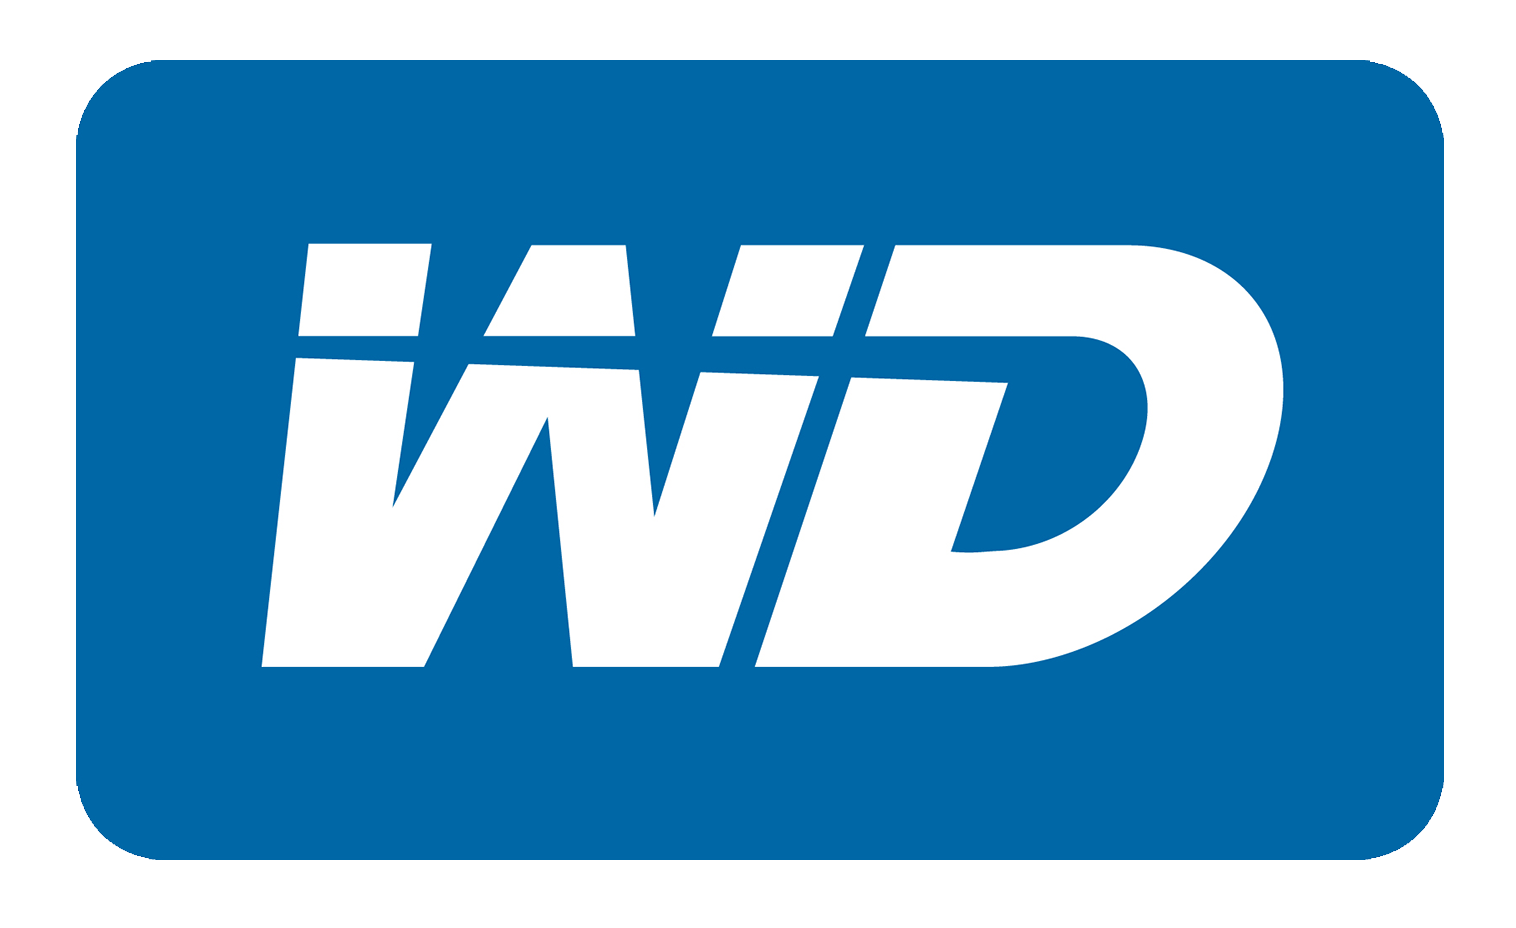 Western Digital Corporation (WDC) Shares Bought by Alpha Cubed Investments LLC